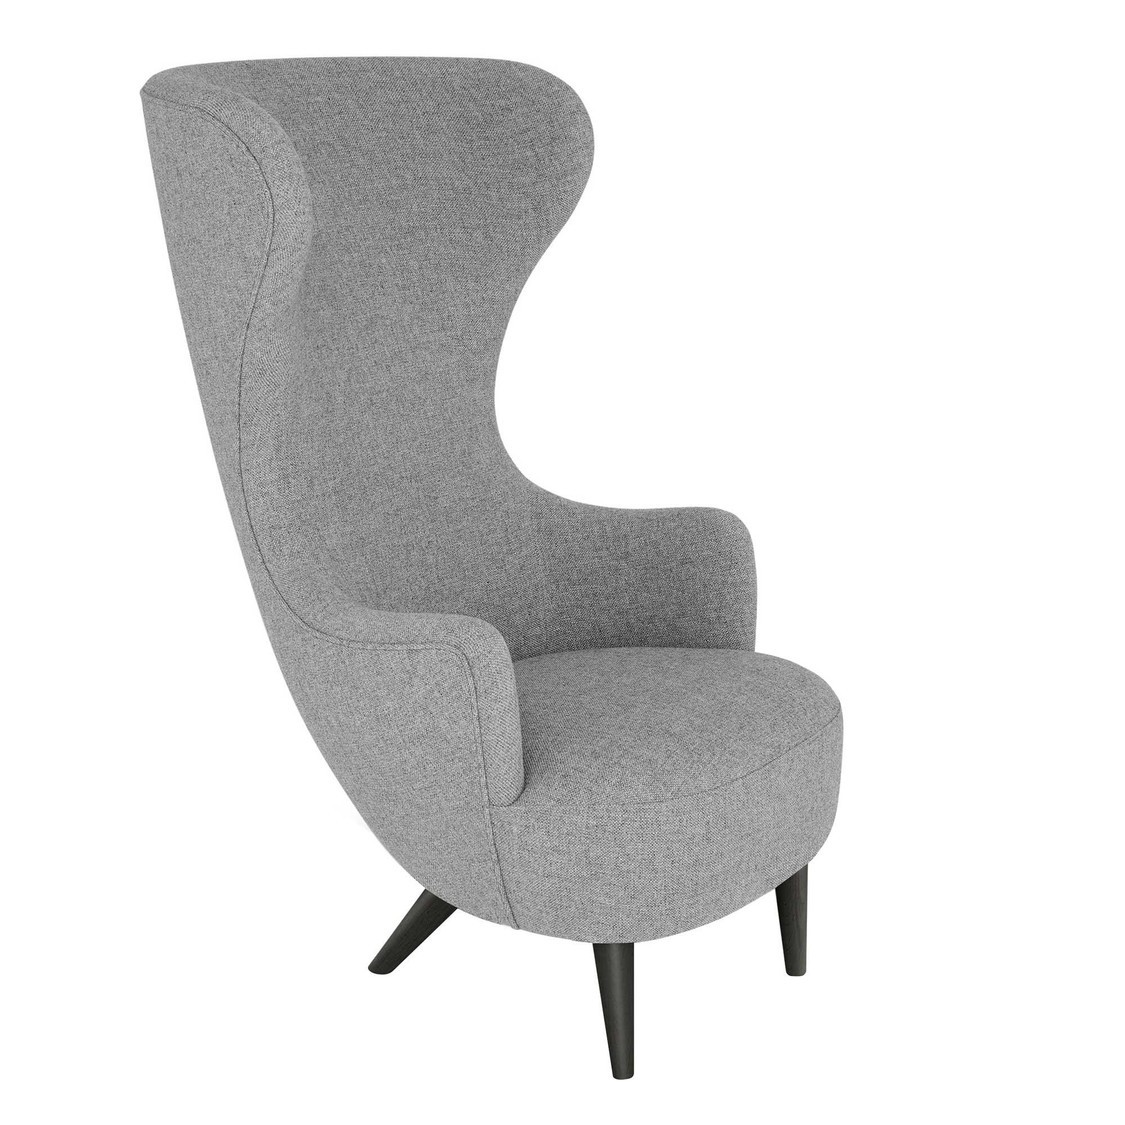 Ohren Sessel Wingback Chair Ohrensessel